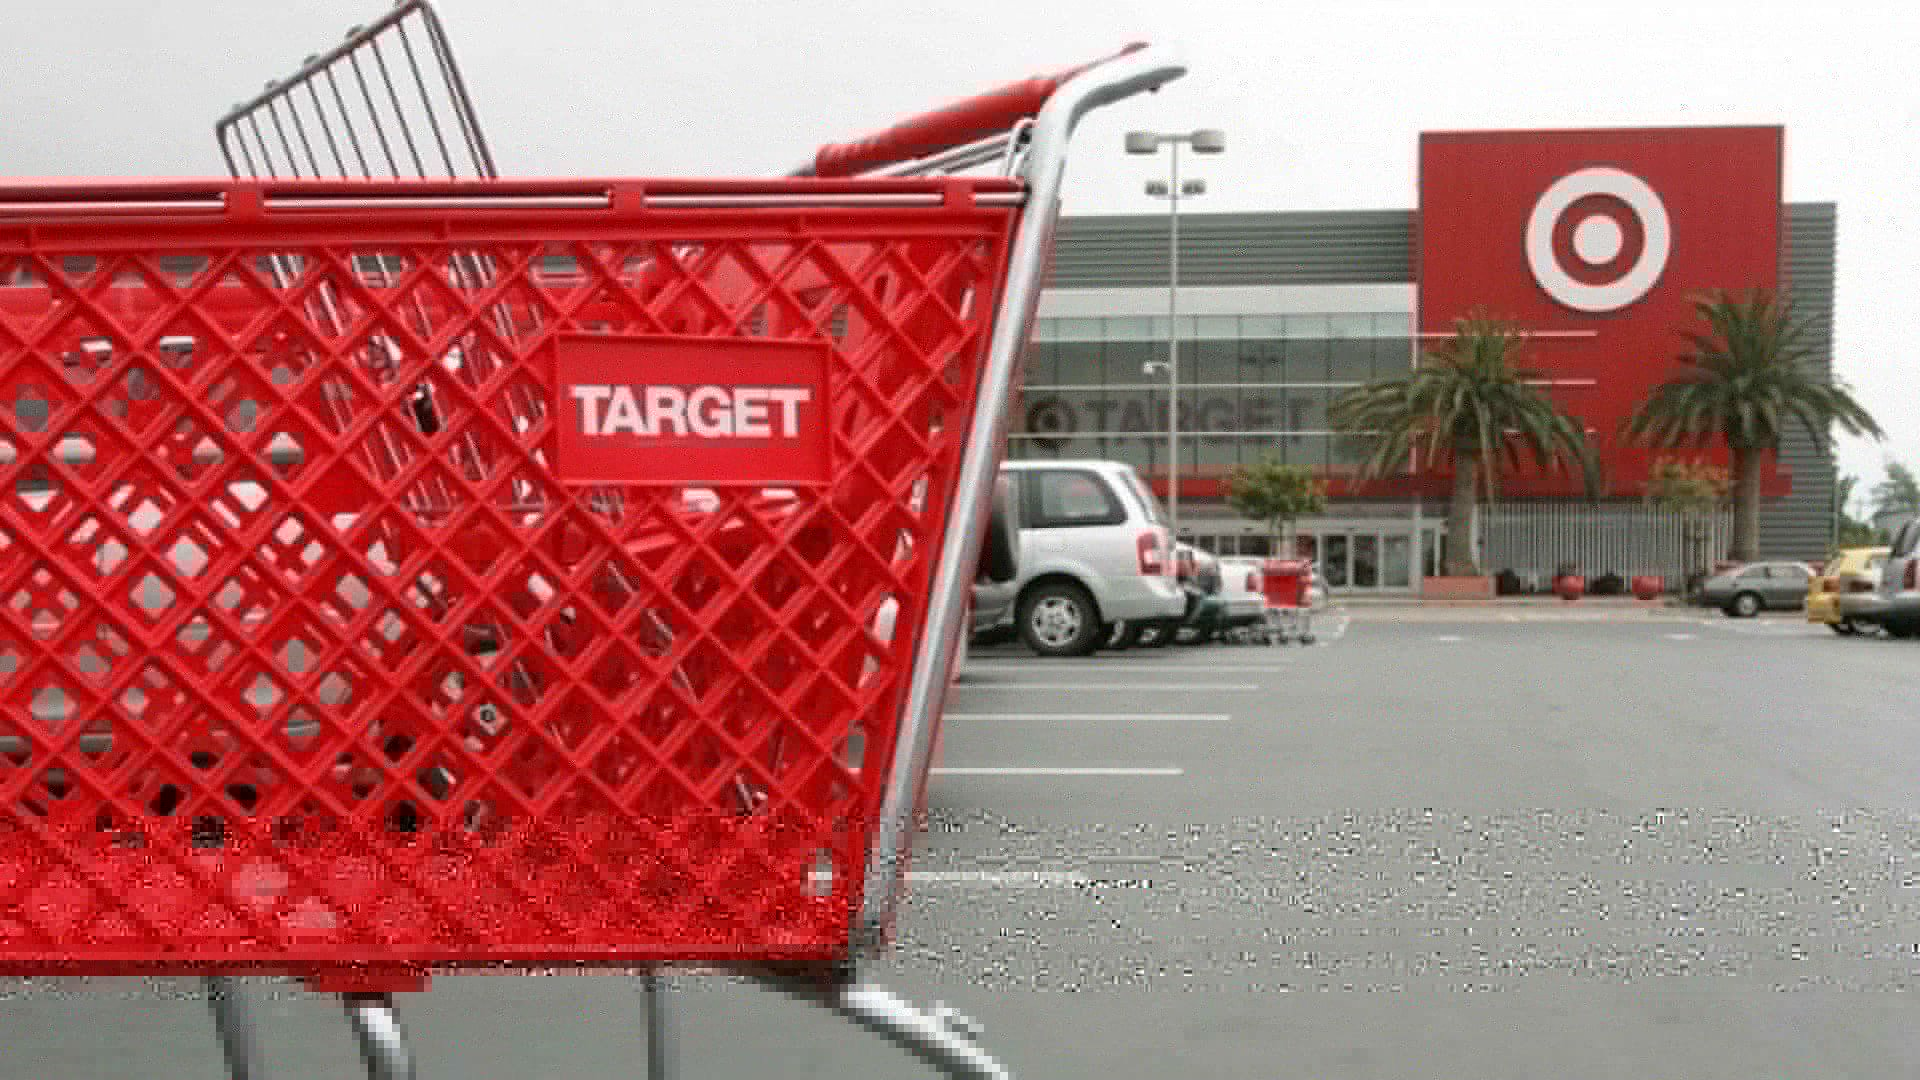 What You Can Learn from Target's Experience Building an App